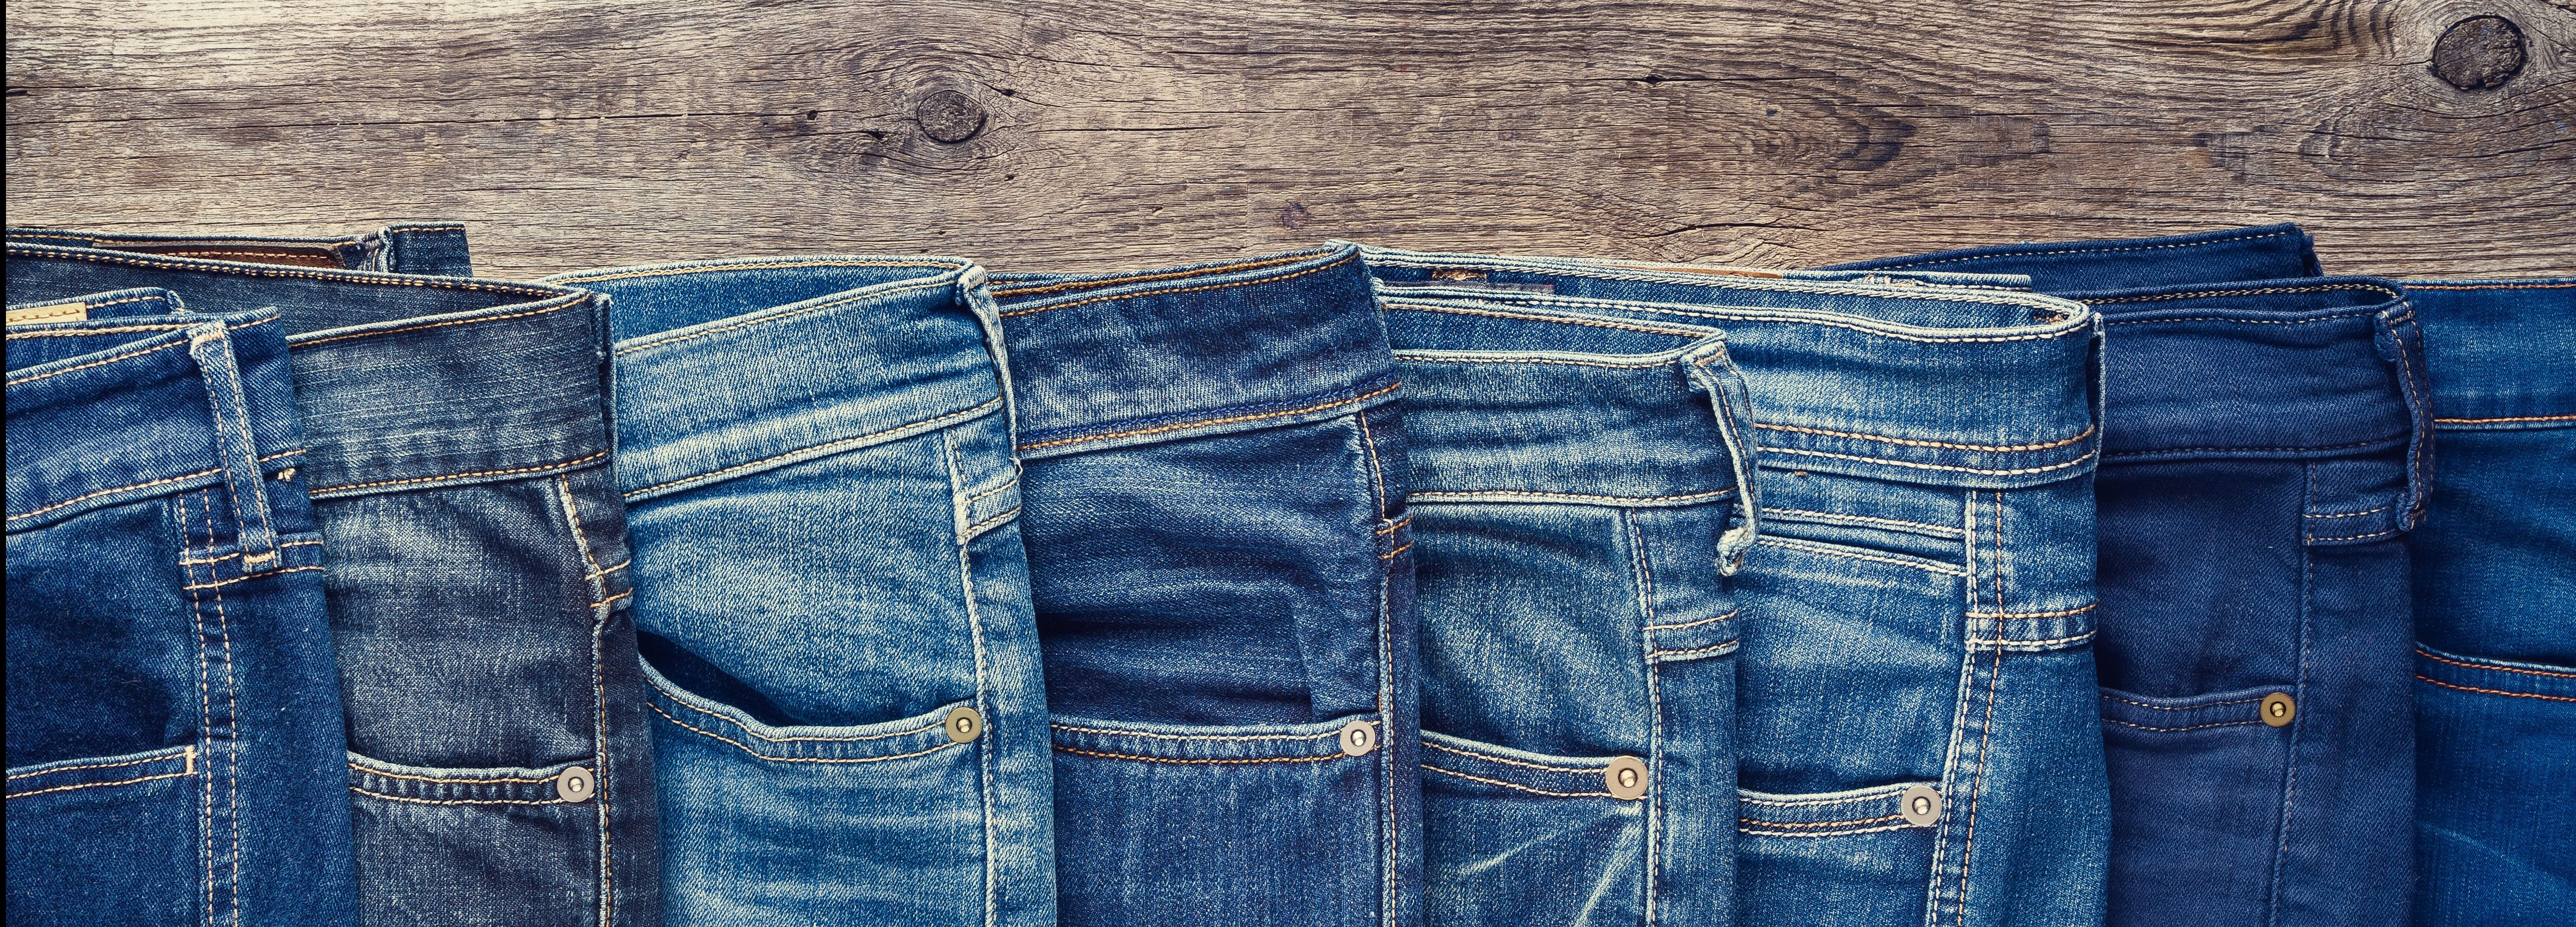 Re-use jeans - Mud Jeans